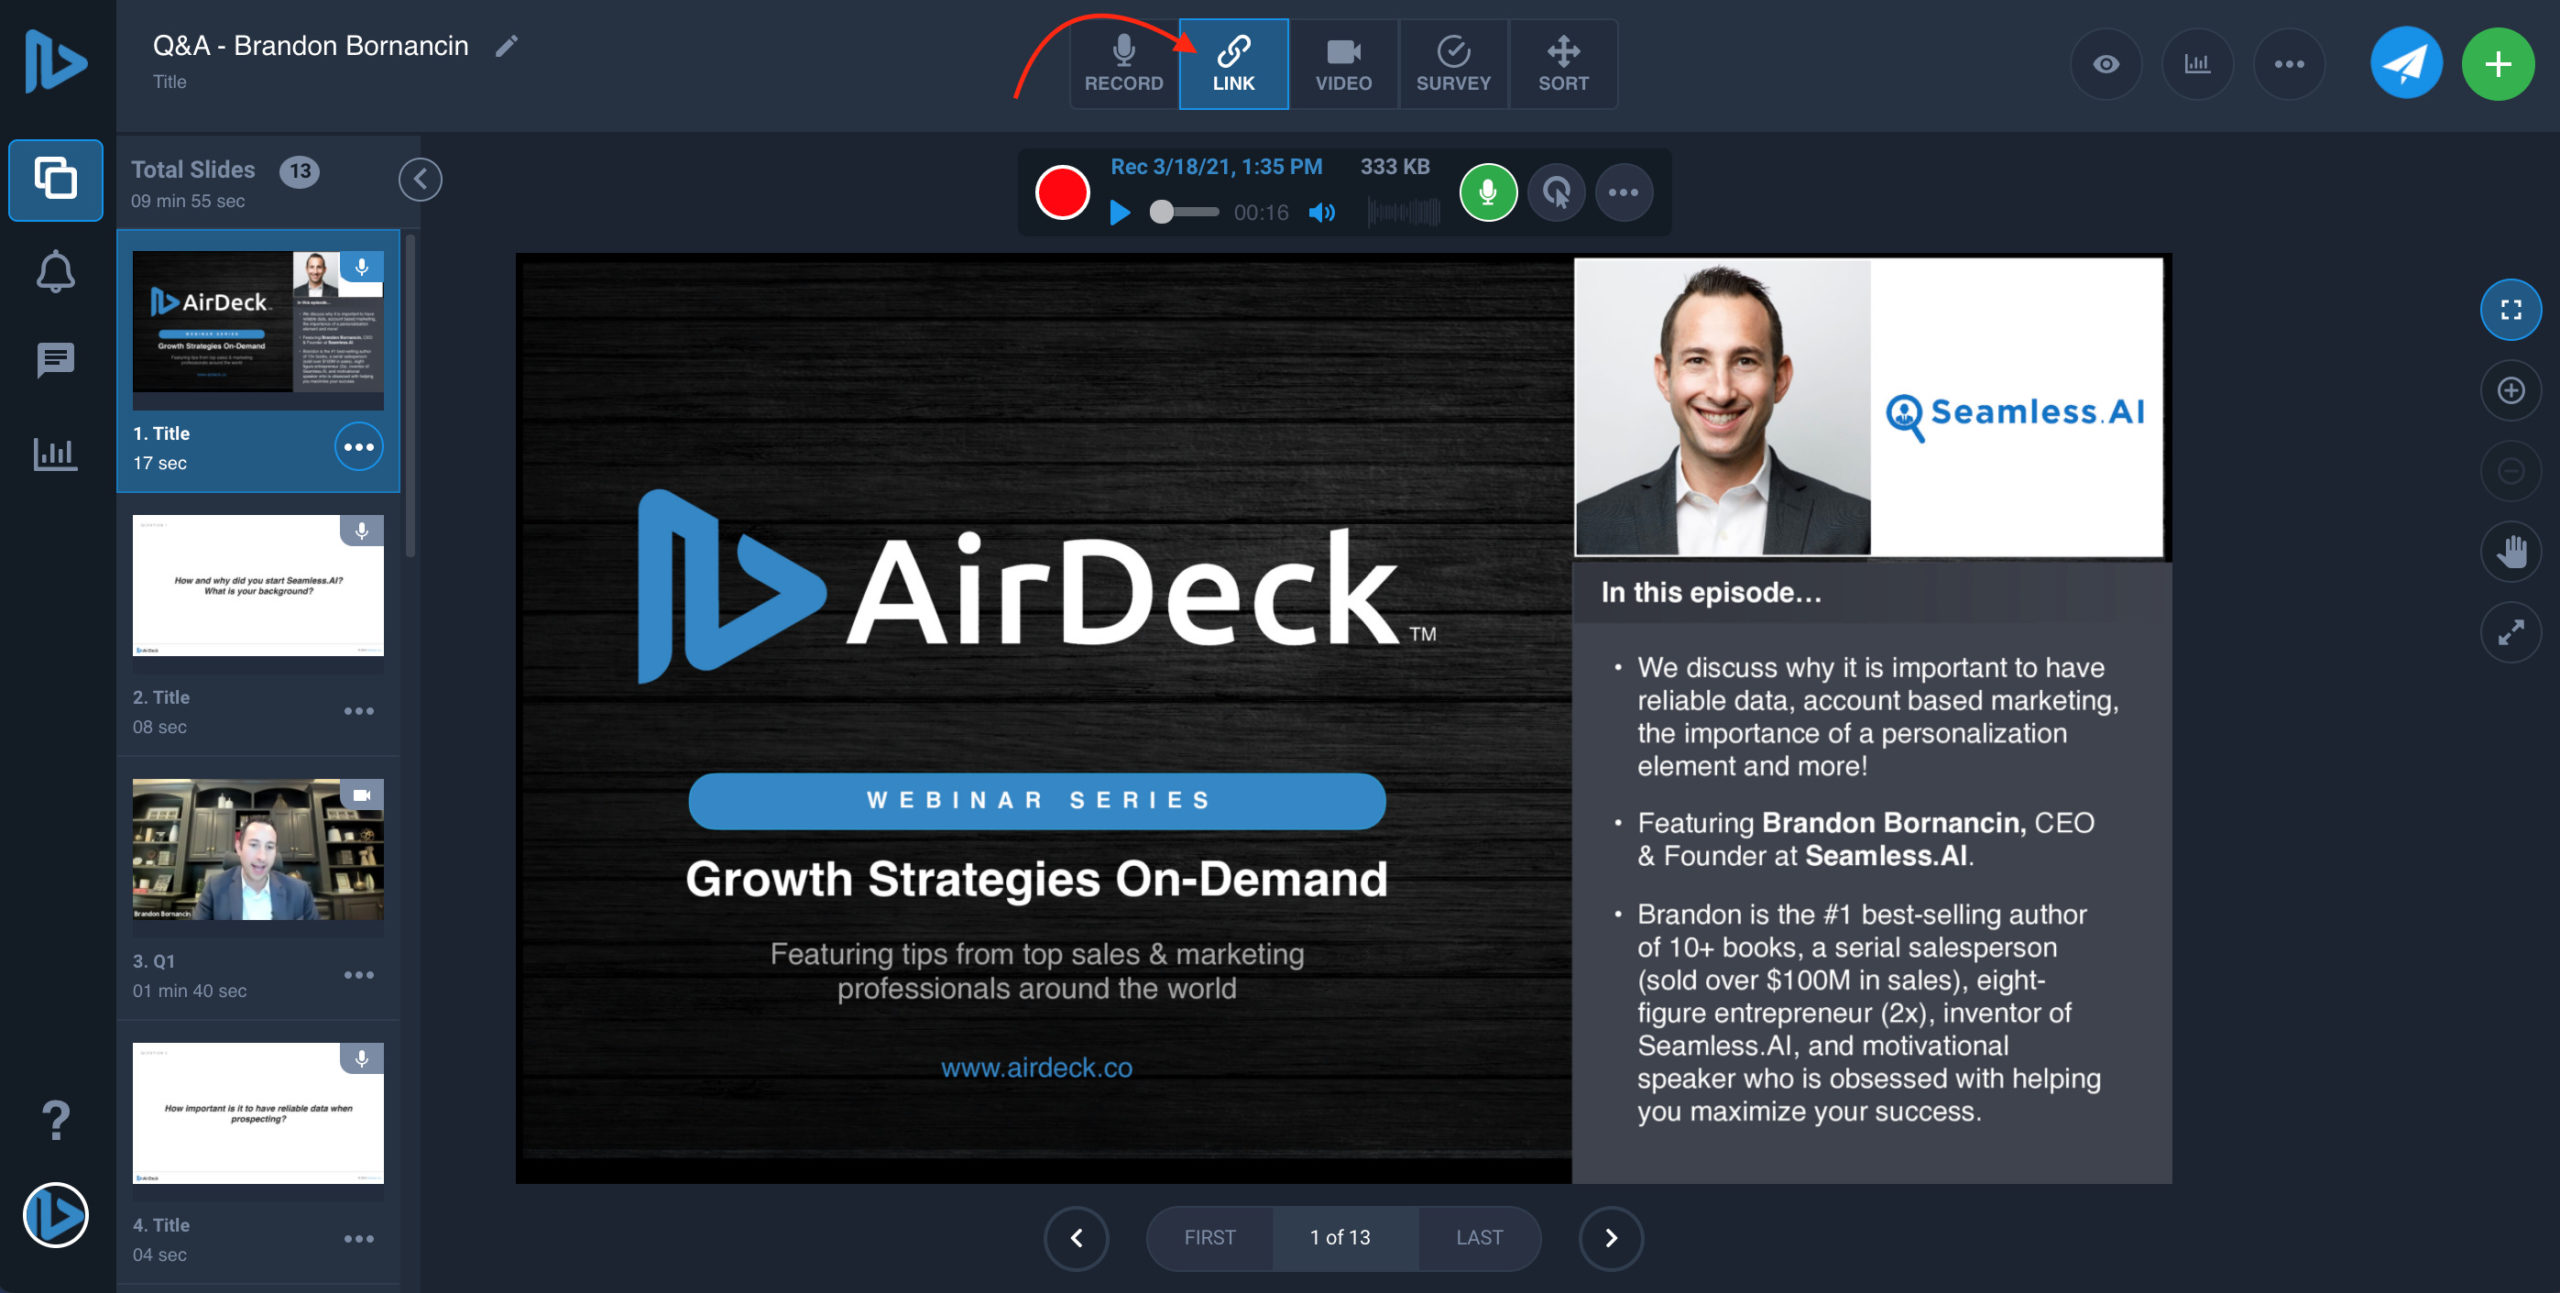 Arrow pointing to link type button on AirDeck user interface